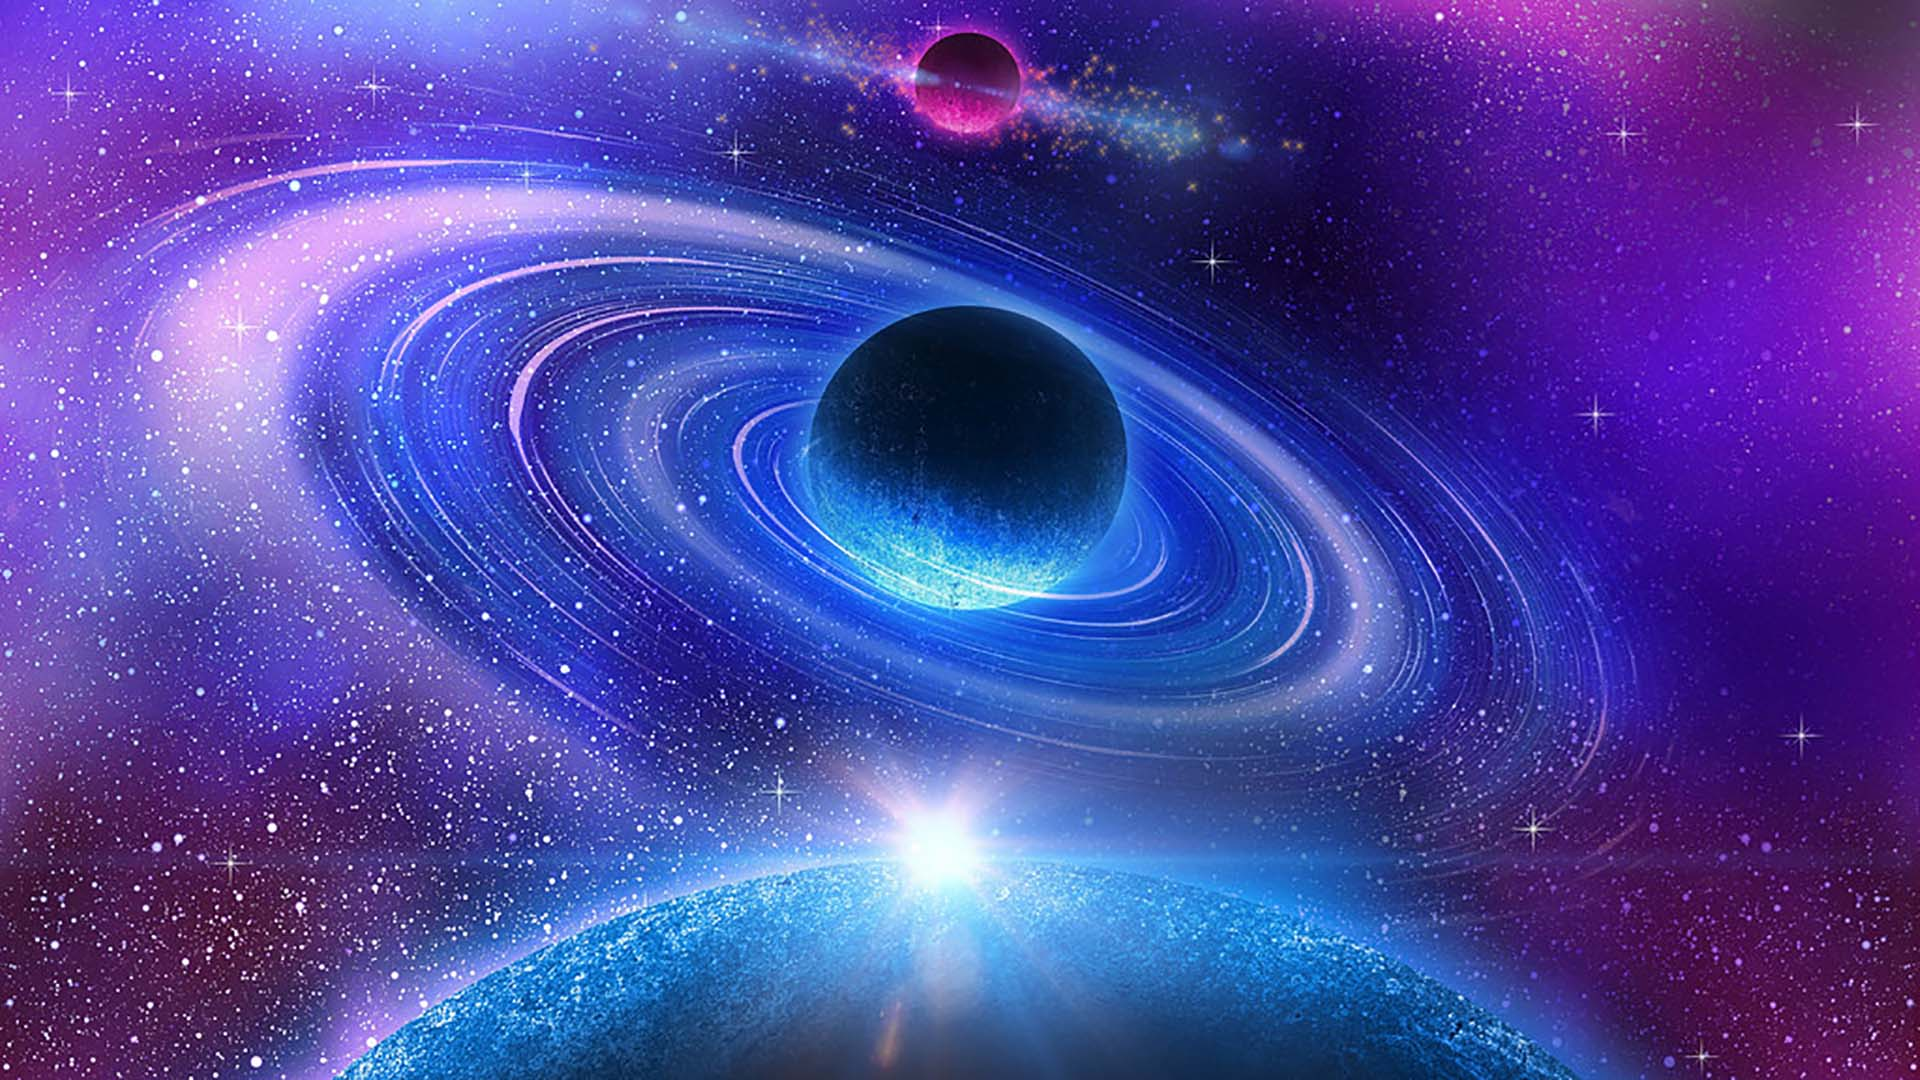 50 Cool Galaxy Wallpapers on DesignsMagcom